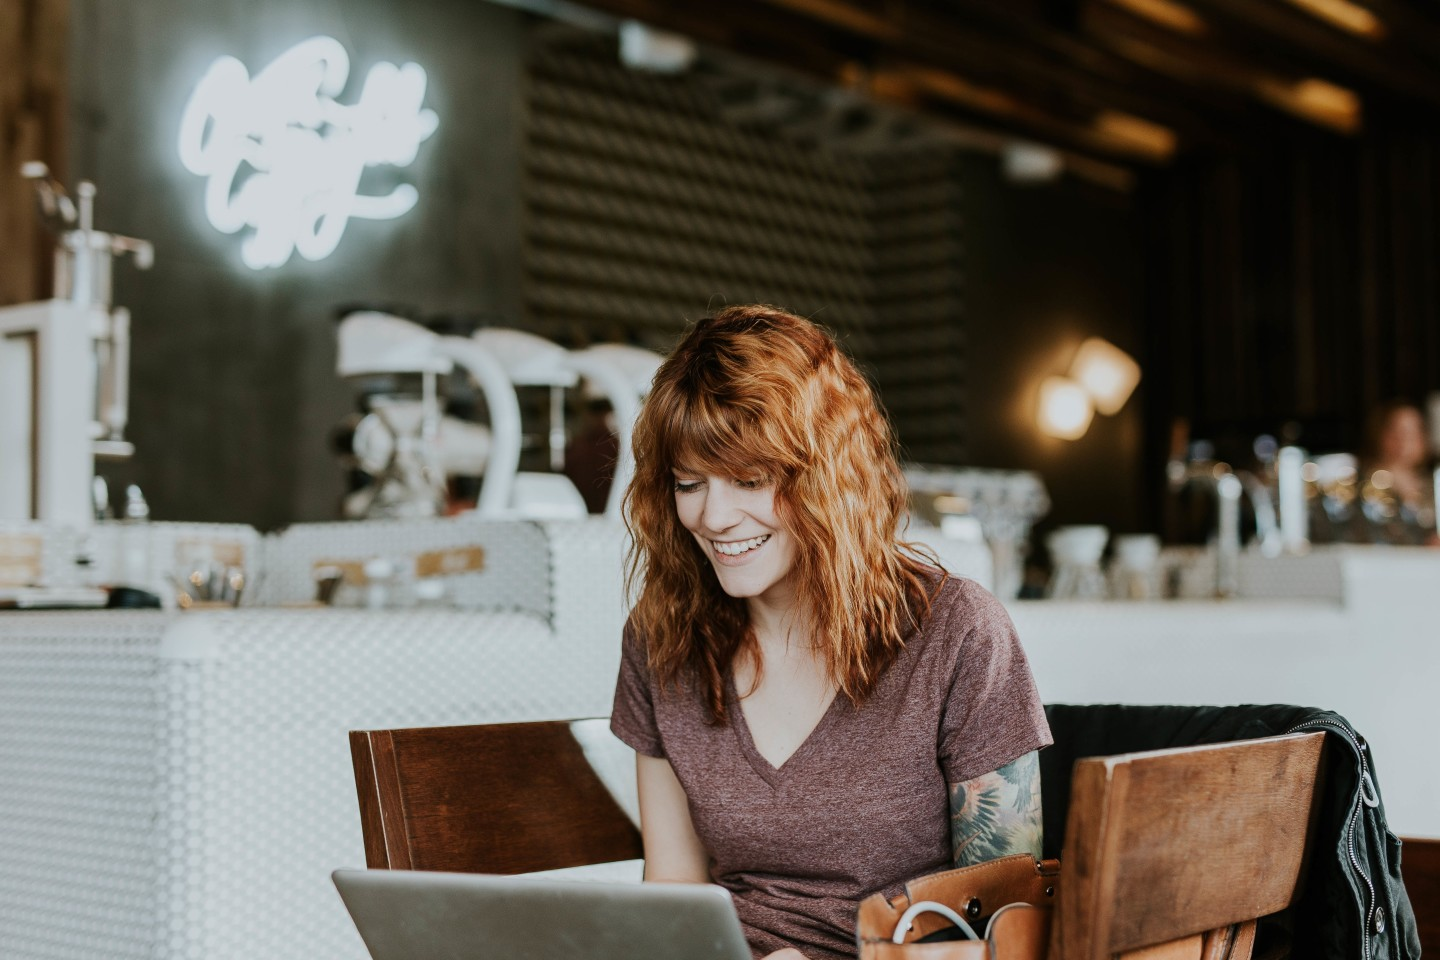 redhead on laptop in coffee shop